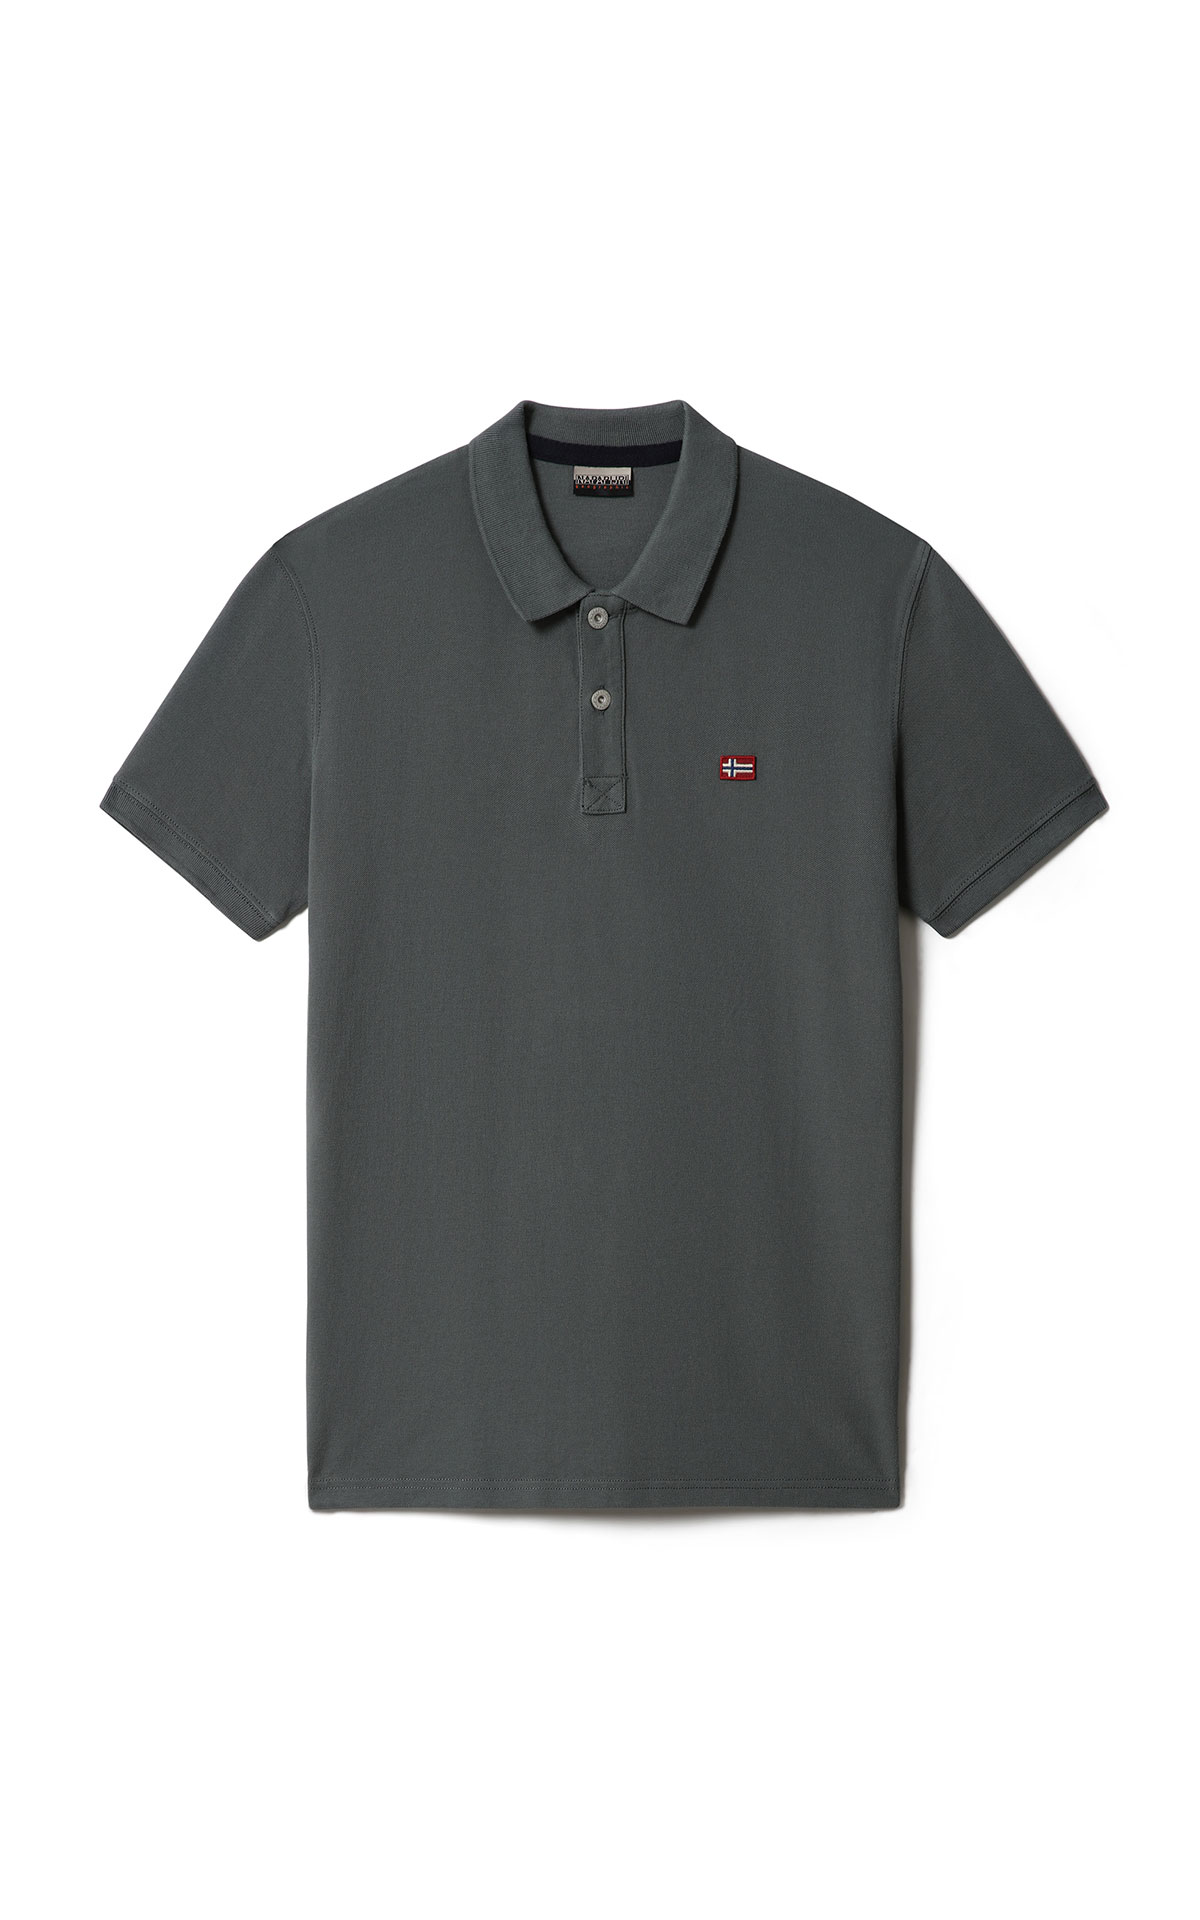 Eruggy polo shirt Napapijri